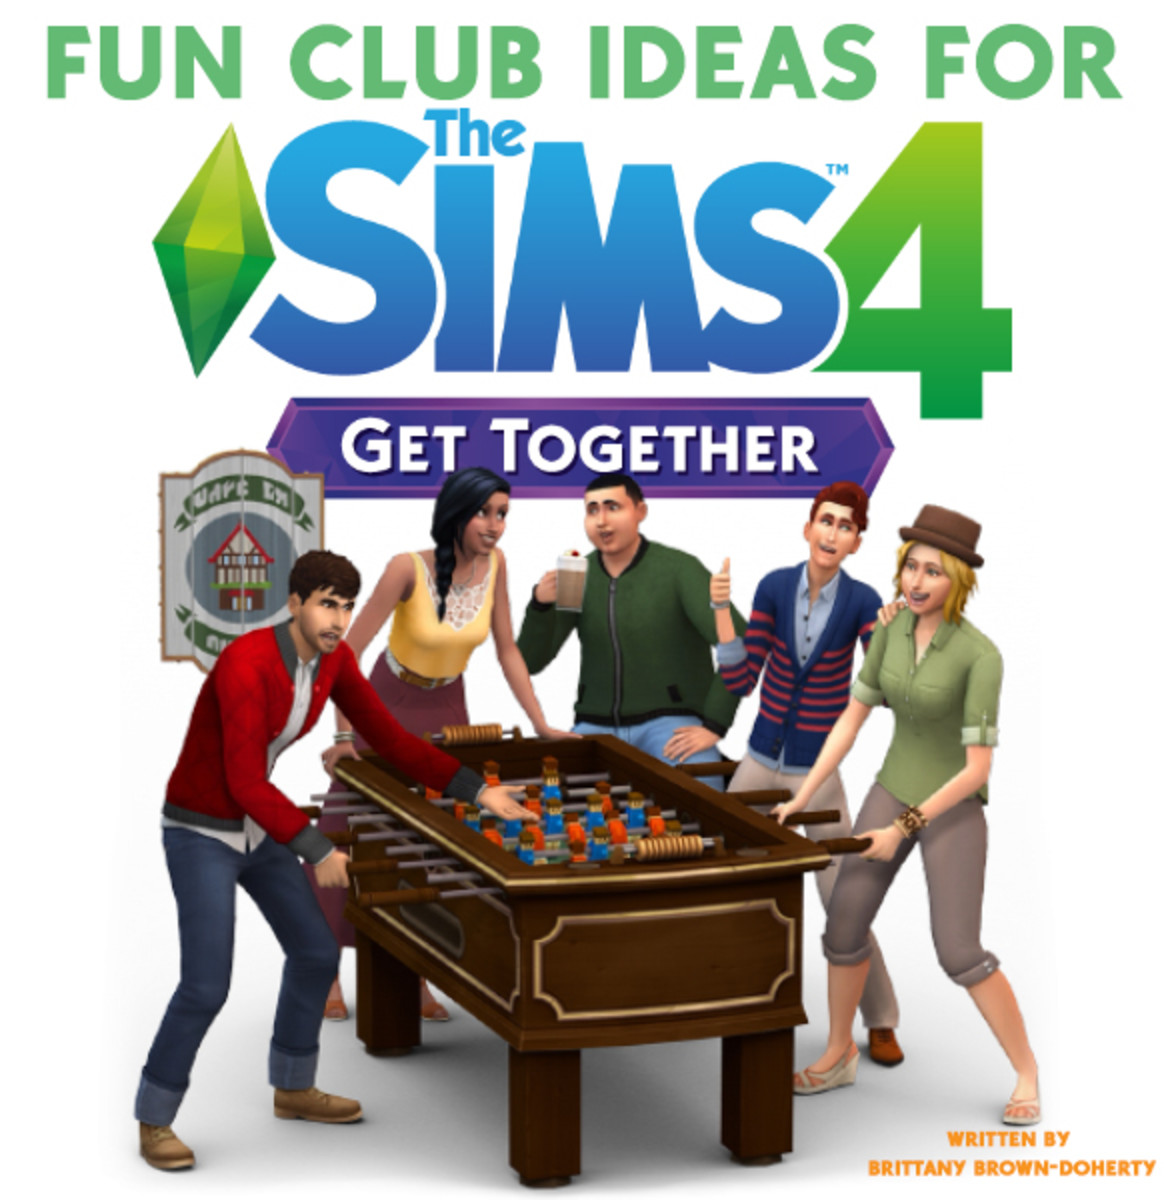 Fun club ideas for the Sims 4 Get Together expansion pack!